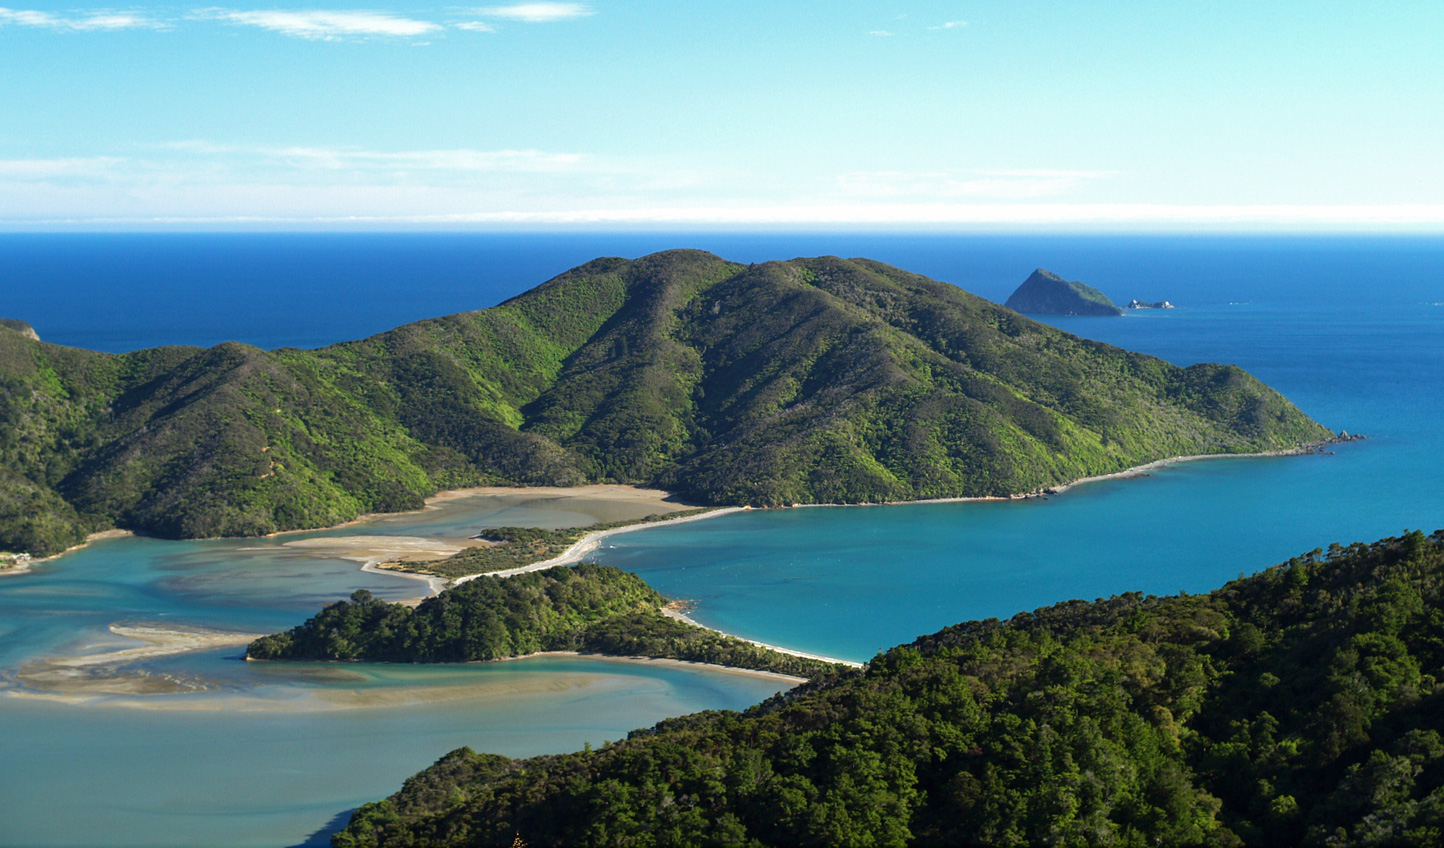 The unique landscapes of Marlborough Sounds